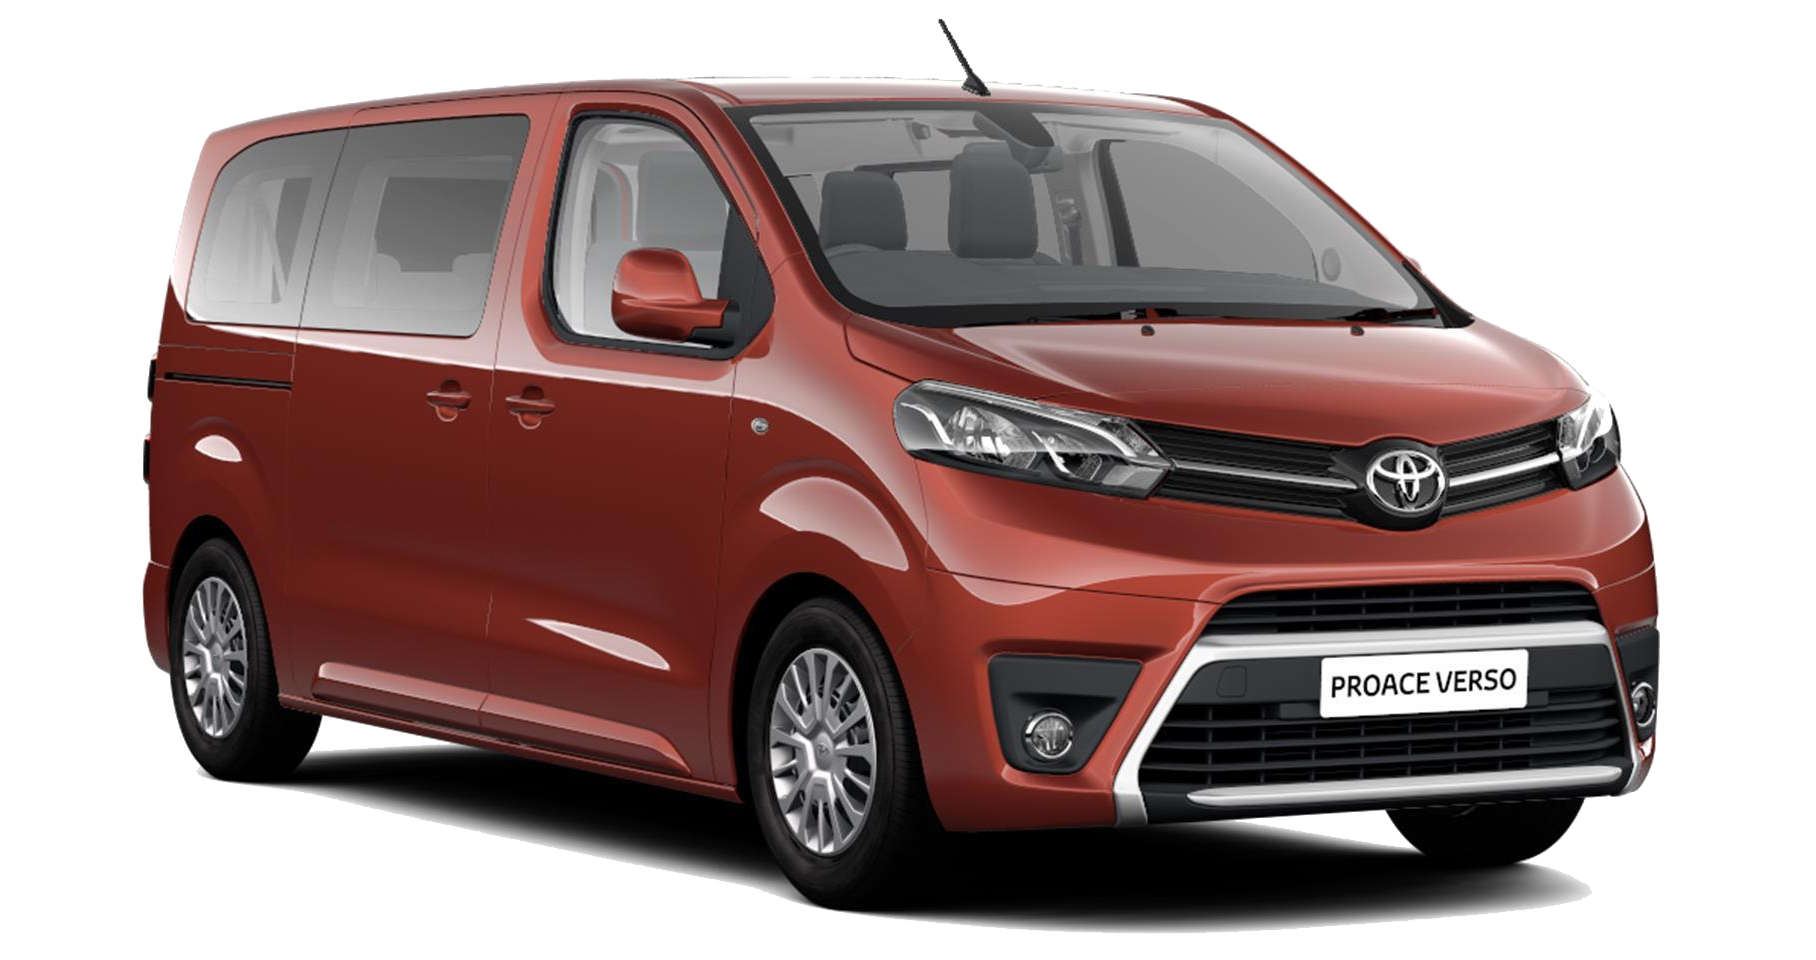 Toyota Proace Verso - Available in Ember Orange